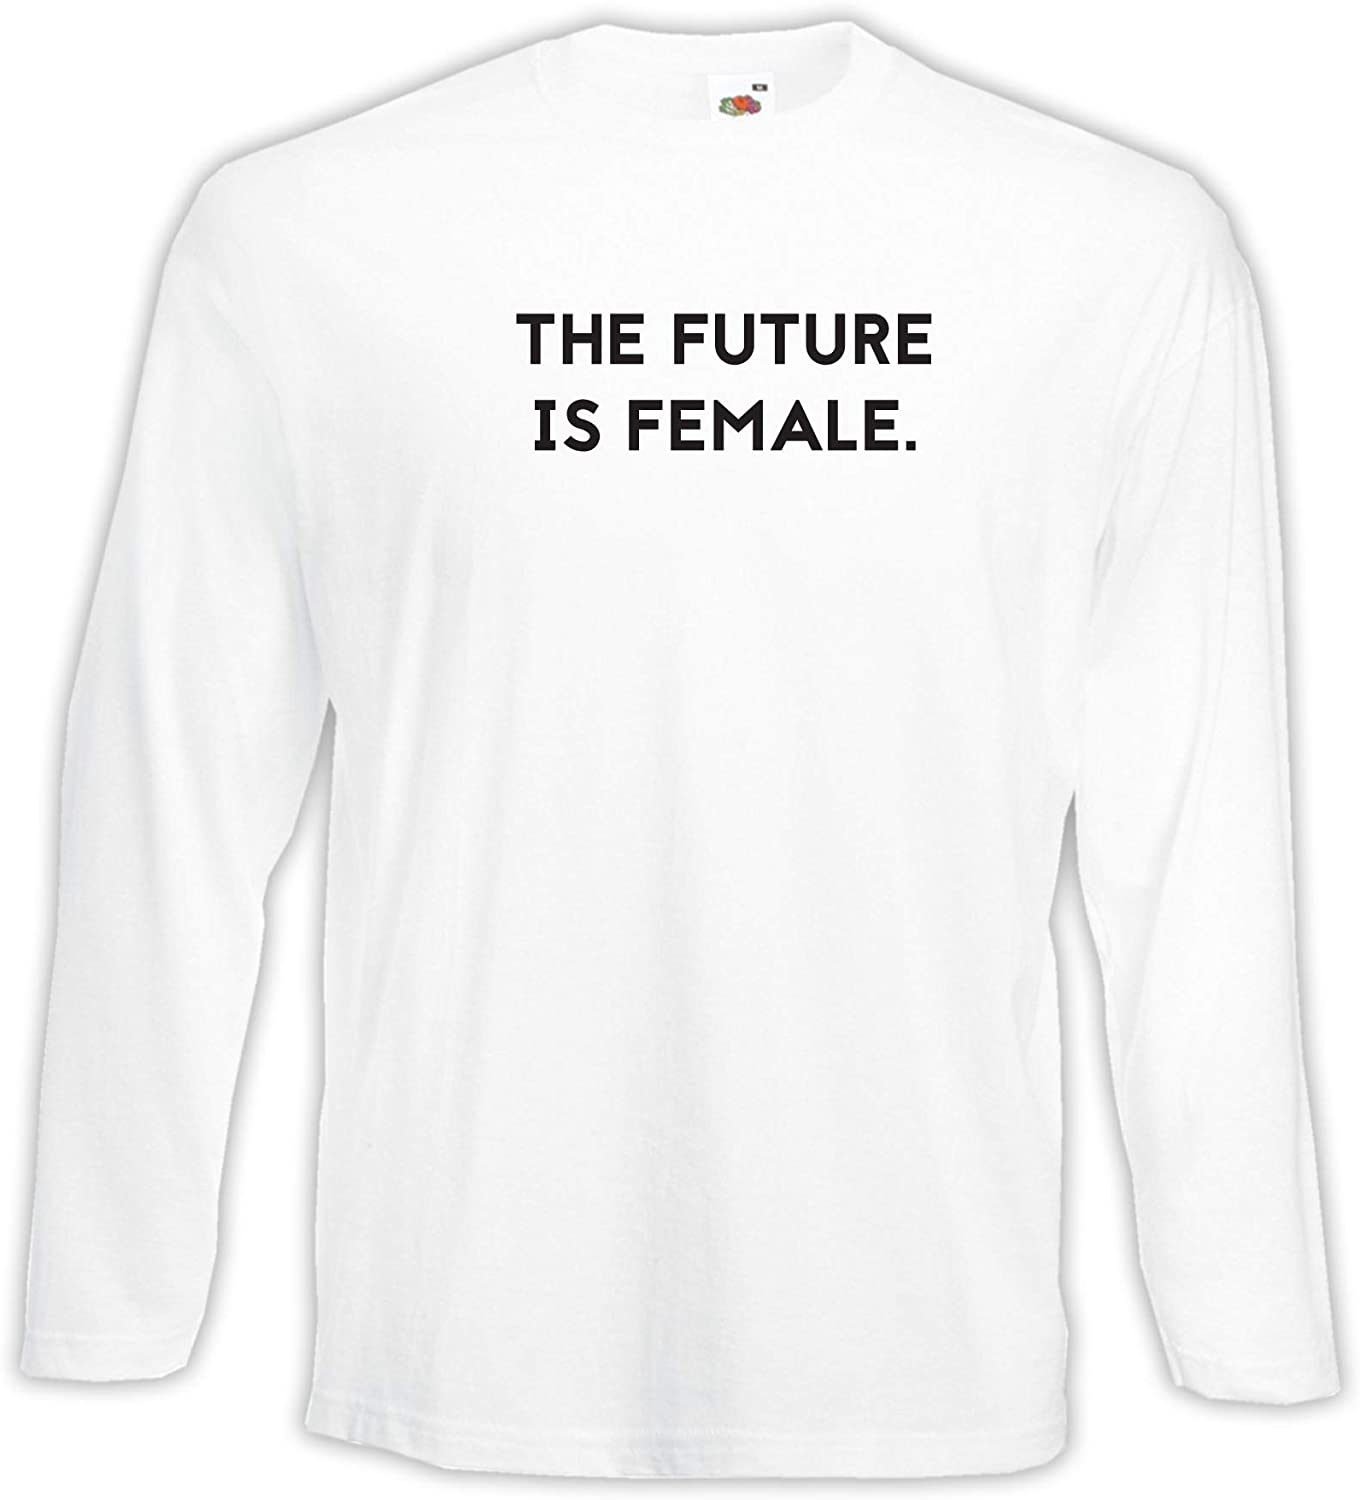 Settantallora - Camiseta de Manga Larga J3895 The Future Is Female Retro Vintage: Amazon.es: Ropa y accesorios